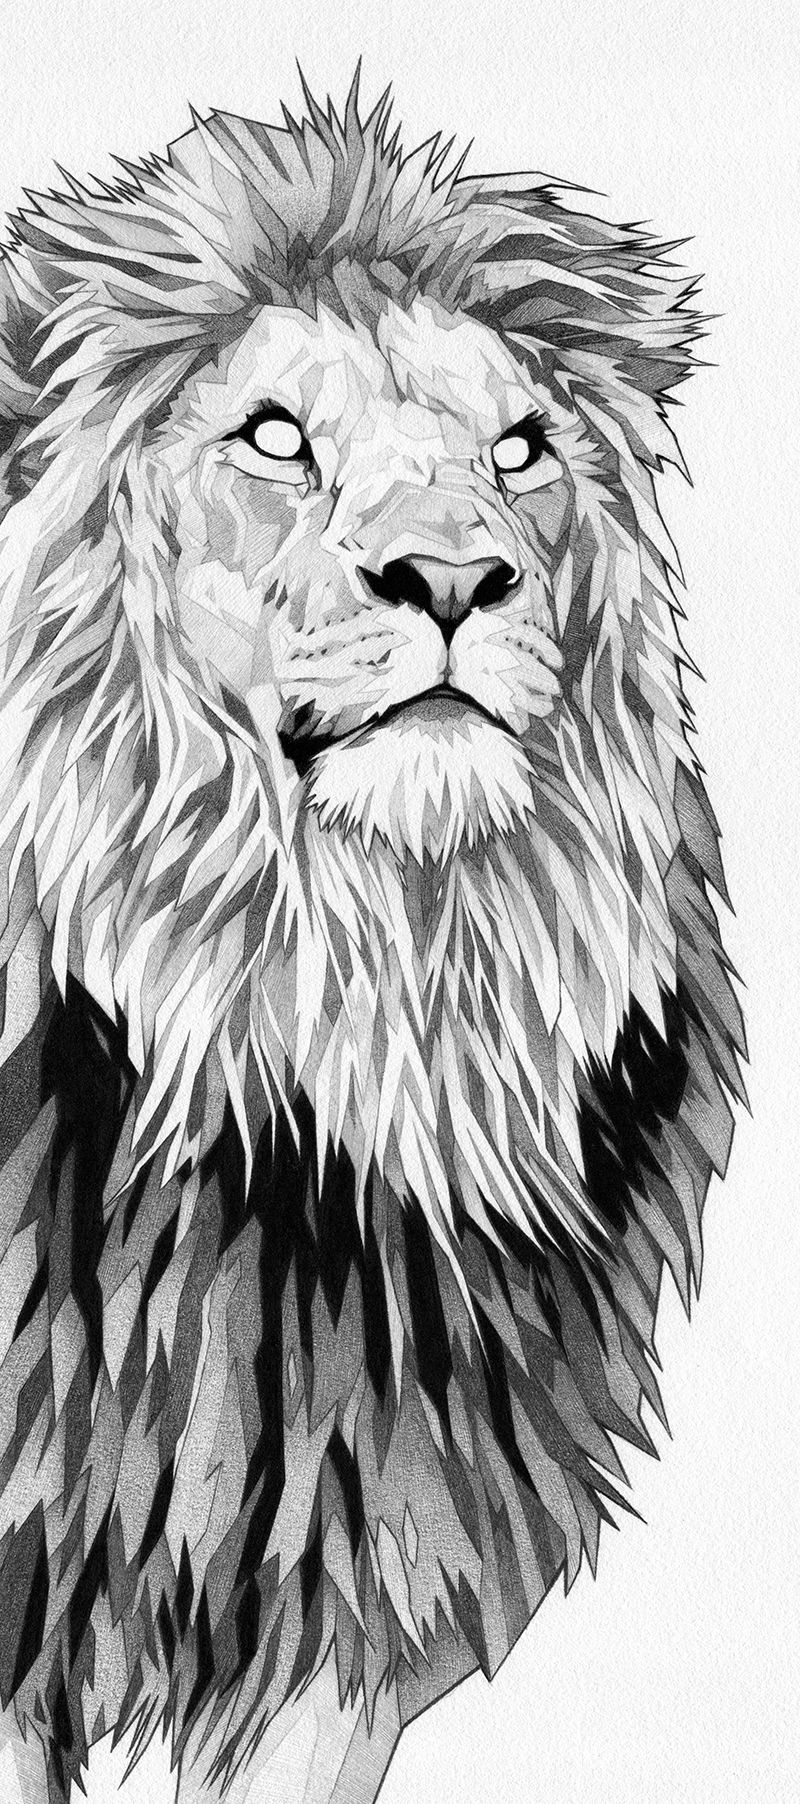 Swift longboards 6 lion drawing lion art art sketches anonymous lion tattoo